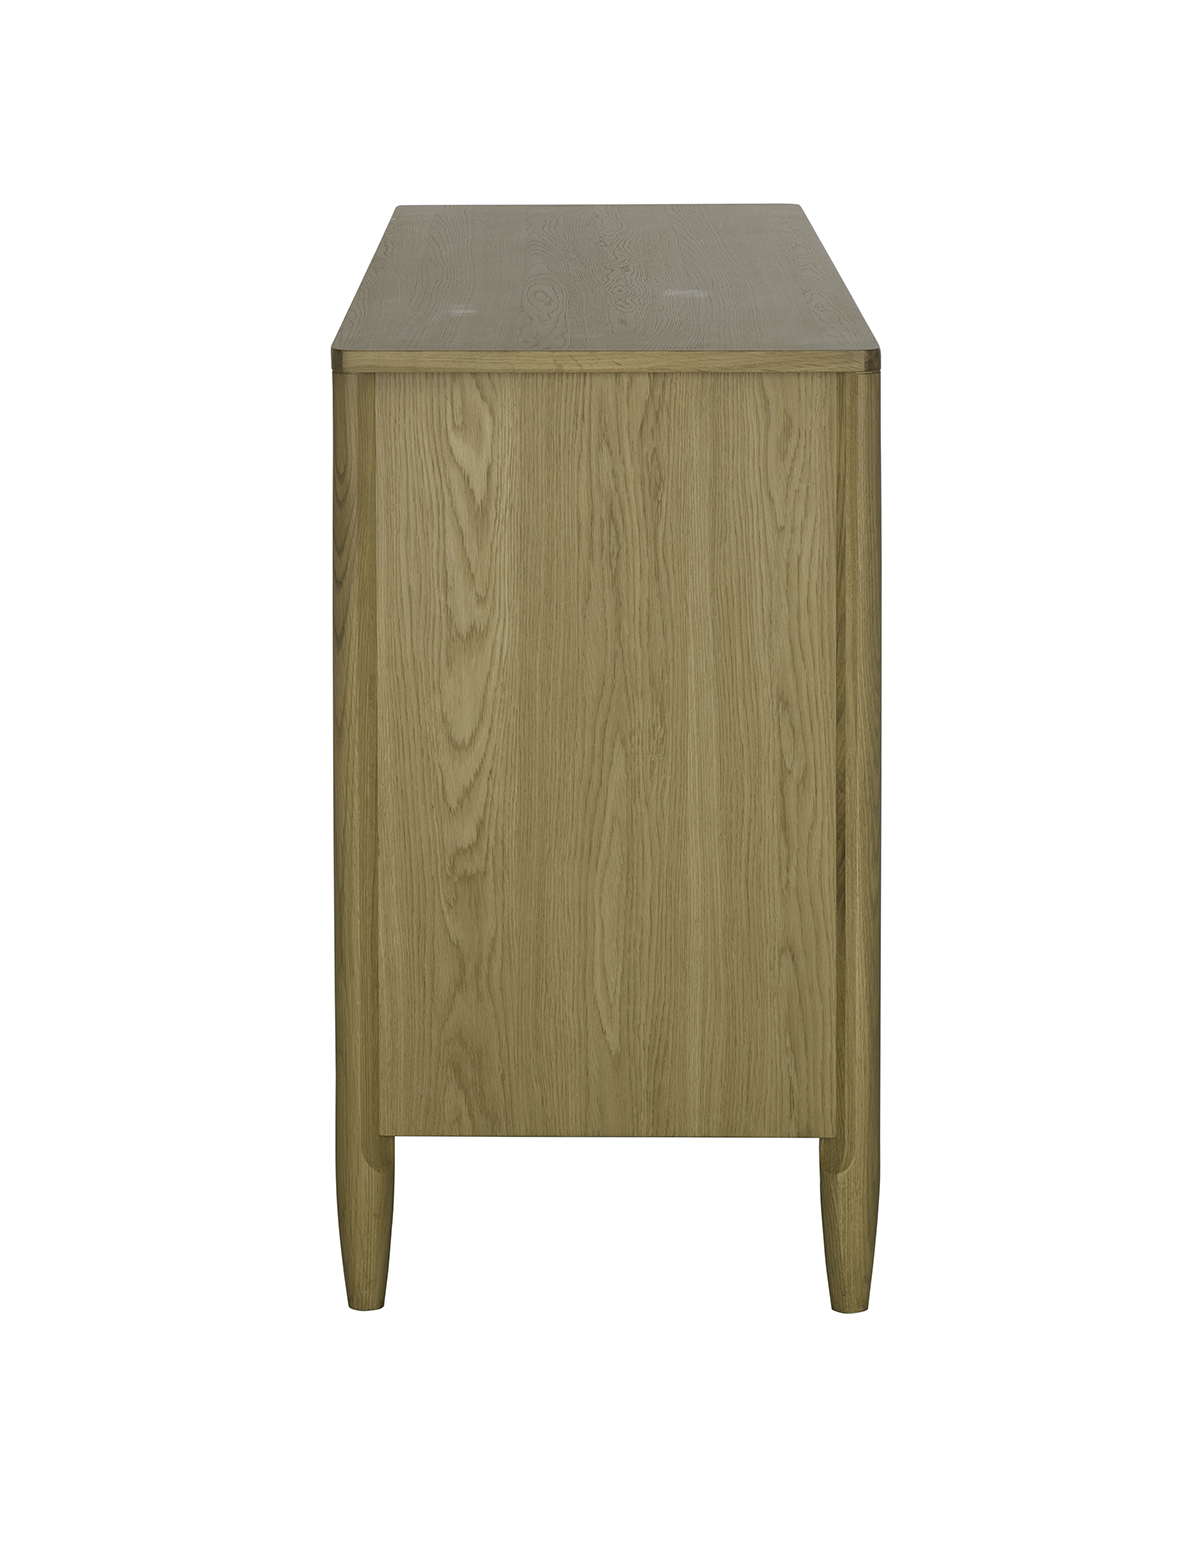 Ercol capena small sideboard choice furniture for Ercol mural cabinets and sideboards